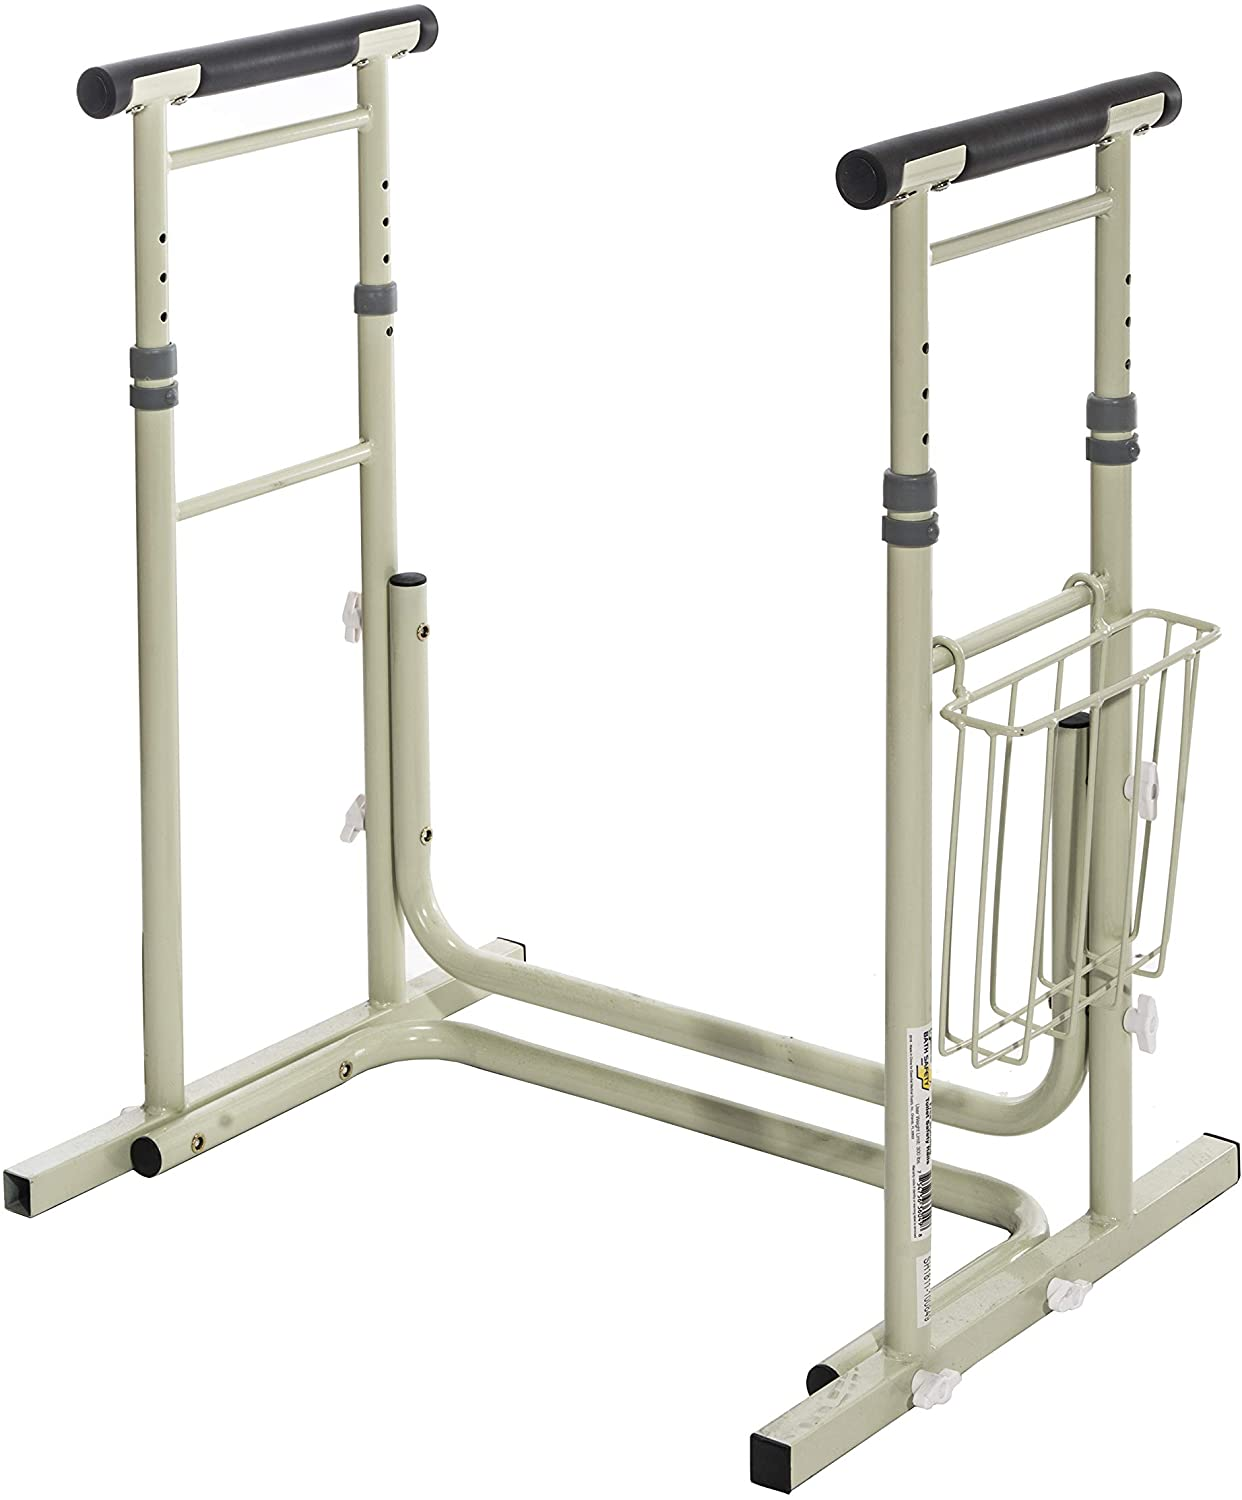 Essential Medical Supply Height Adjustable Standing Toilet Safety Rail with Foam Handles, 1count